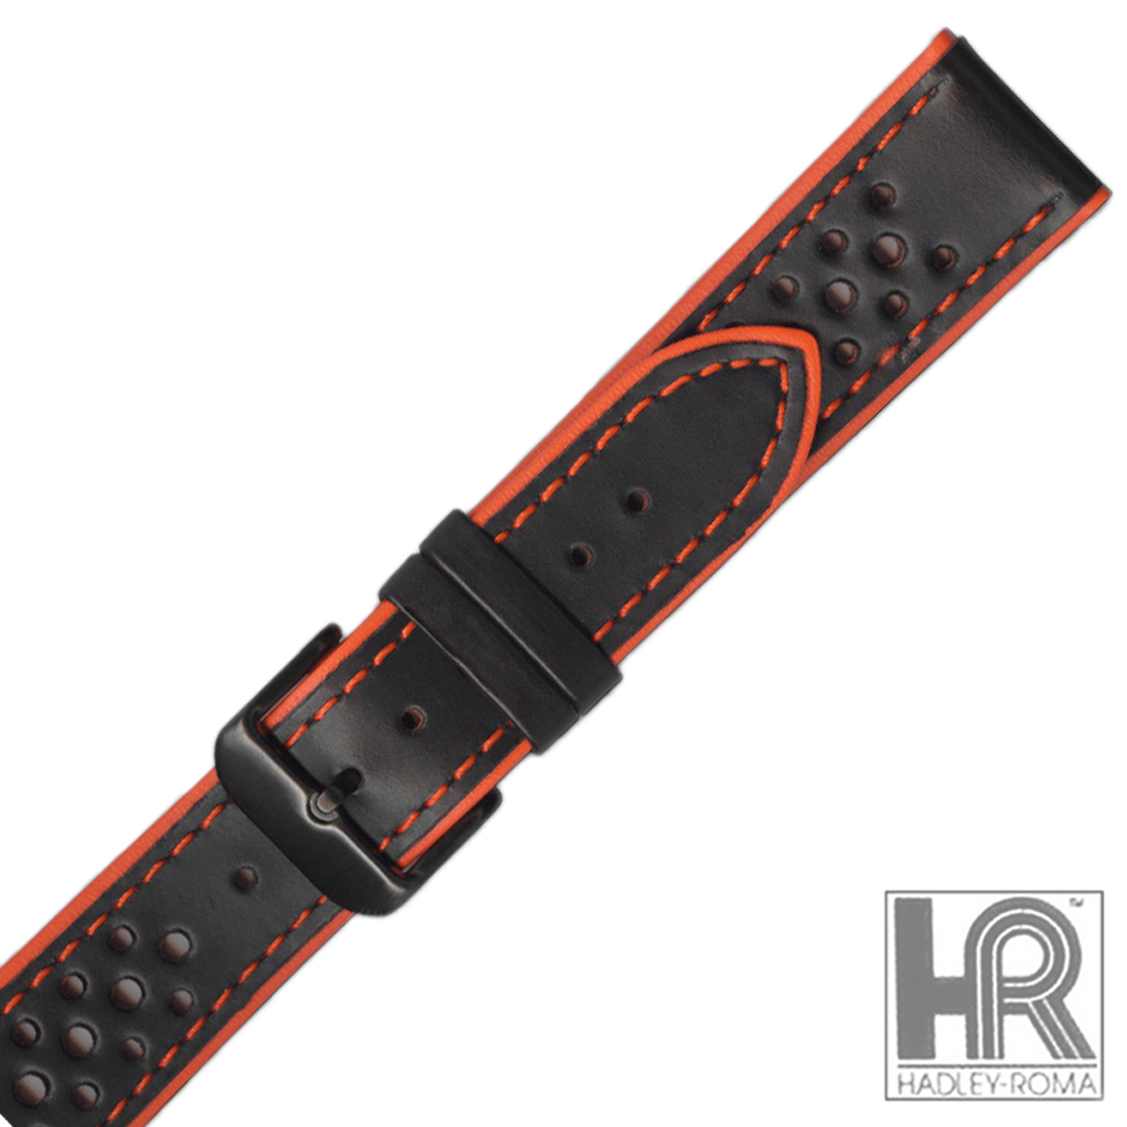 Hadley Roma Ms755 22mm Reg Orange Gen Leather Perforated